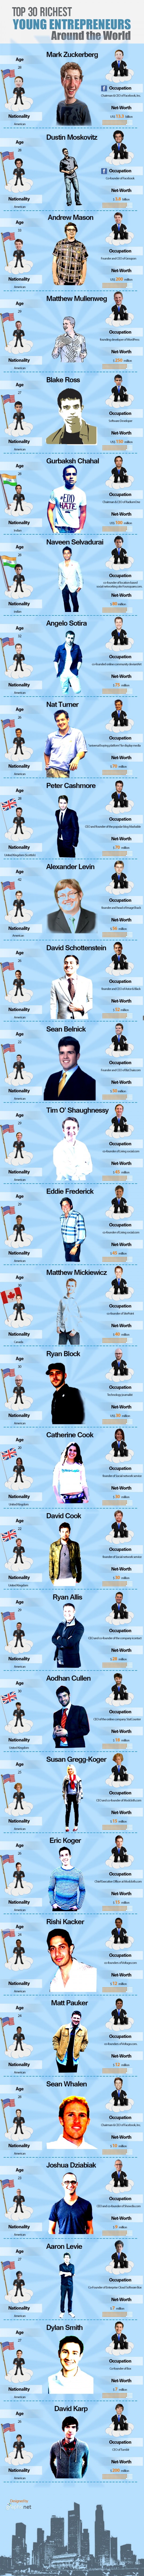 World�s richest and youngest 30 entrepreneurs